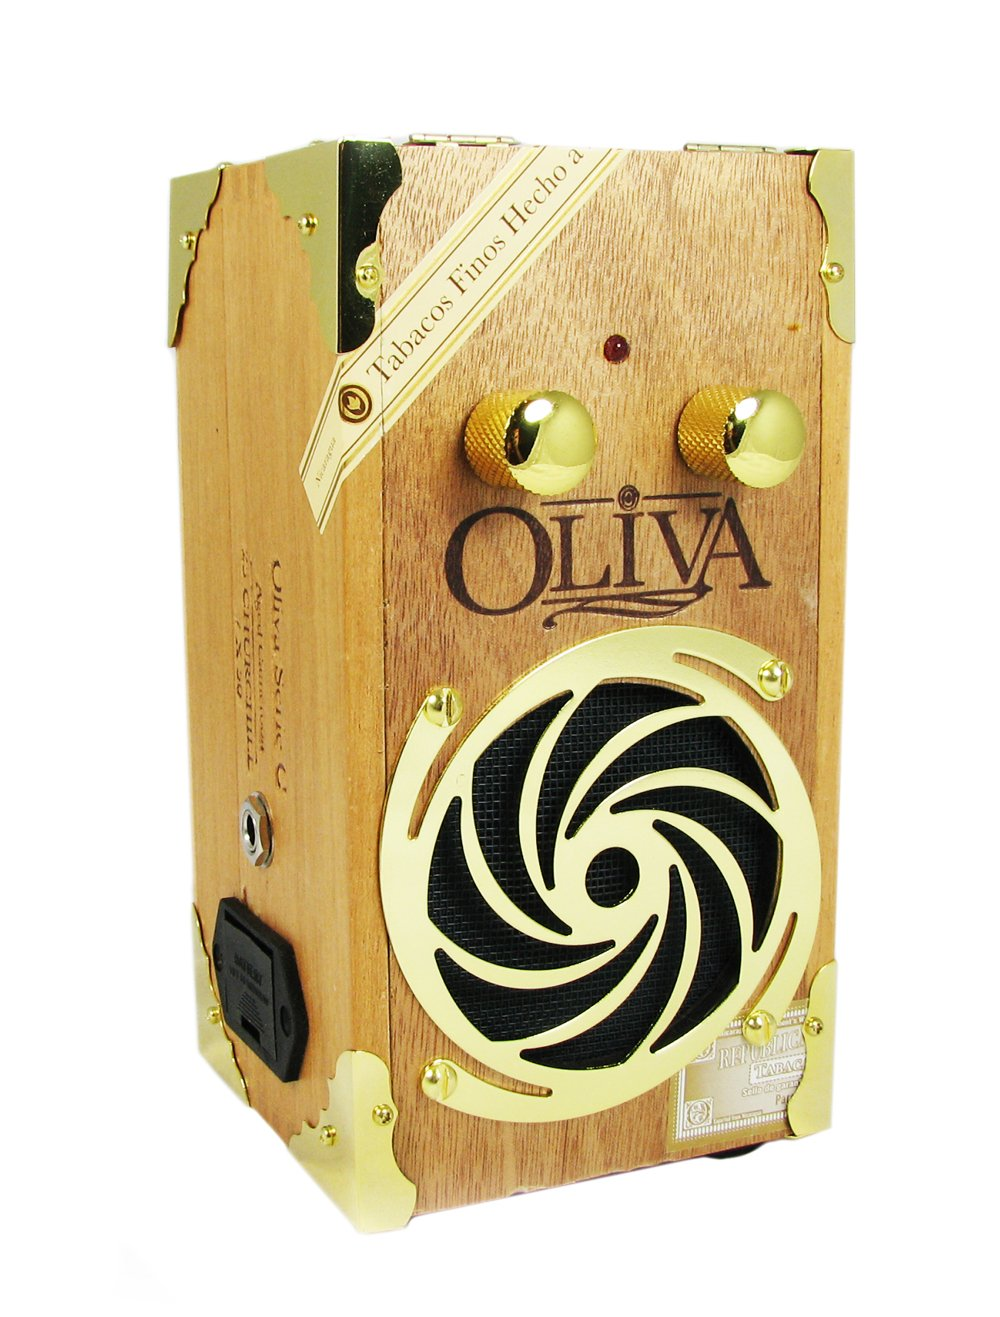 Cigar Box Amplifier: ''Gold Hurricane'' Oliva G Series - Hand-made in the USA! by C. B. Gitty